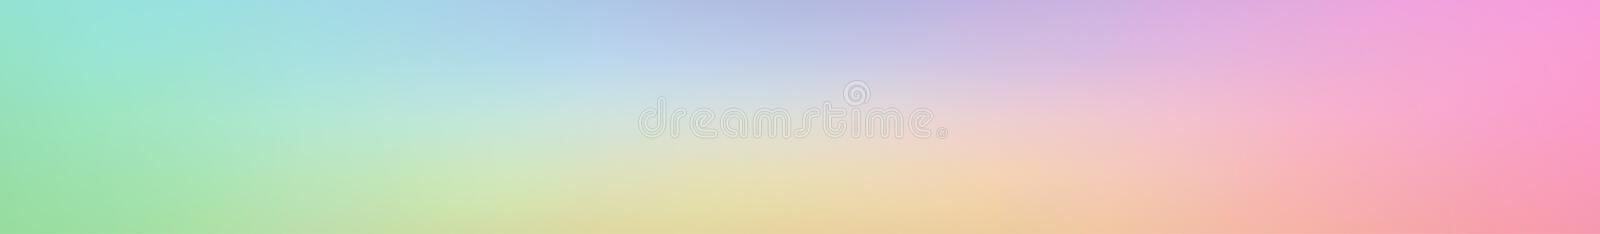 Panoramic abstract colored blurred gradient background royalty free illustration